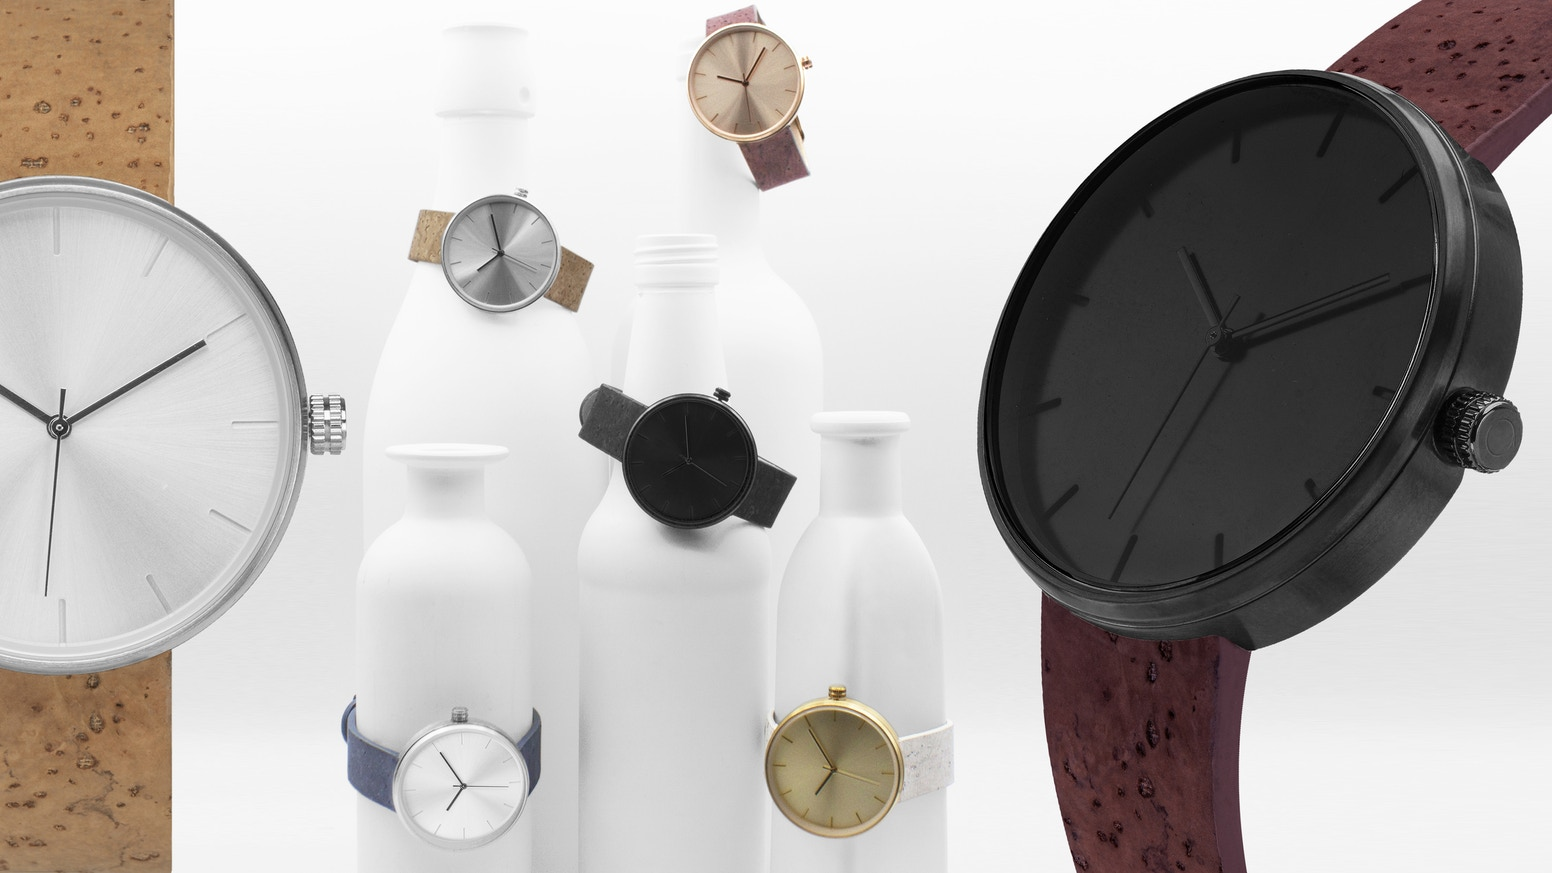 A timepiece featuring cork bands dyed with real wine. This watch makes for a great gift + We'll plant a sustainable cork tree!